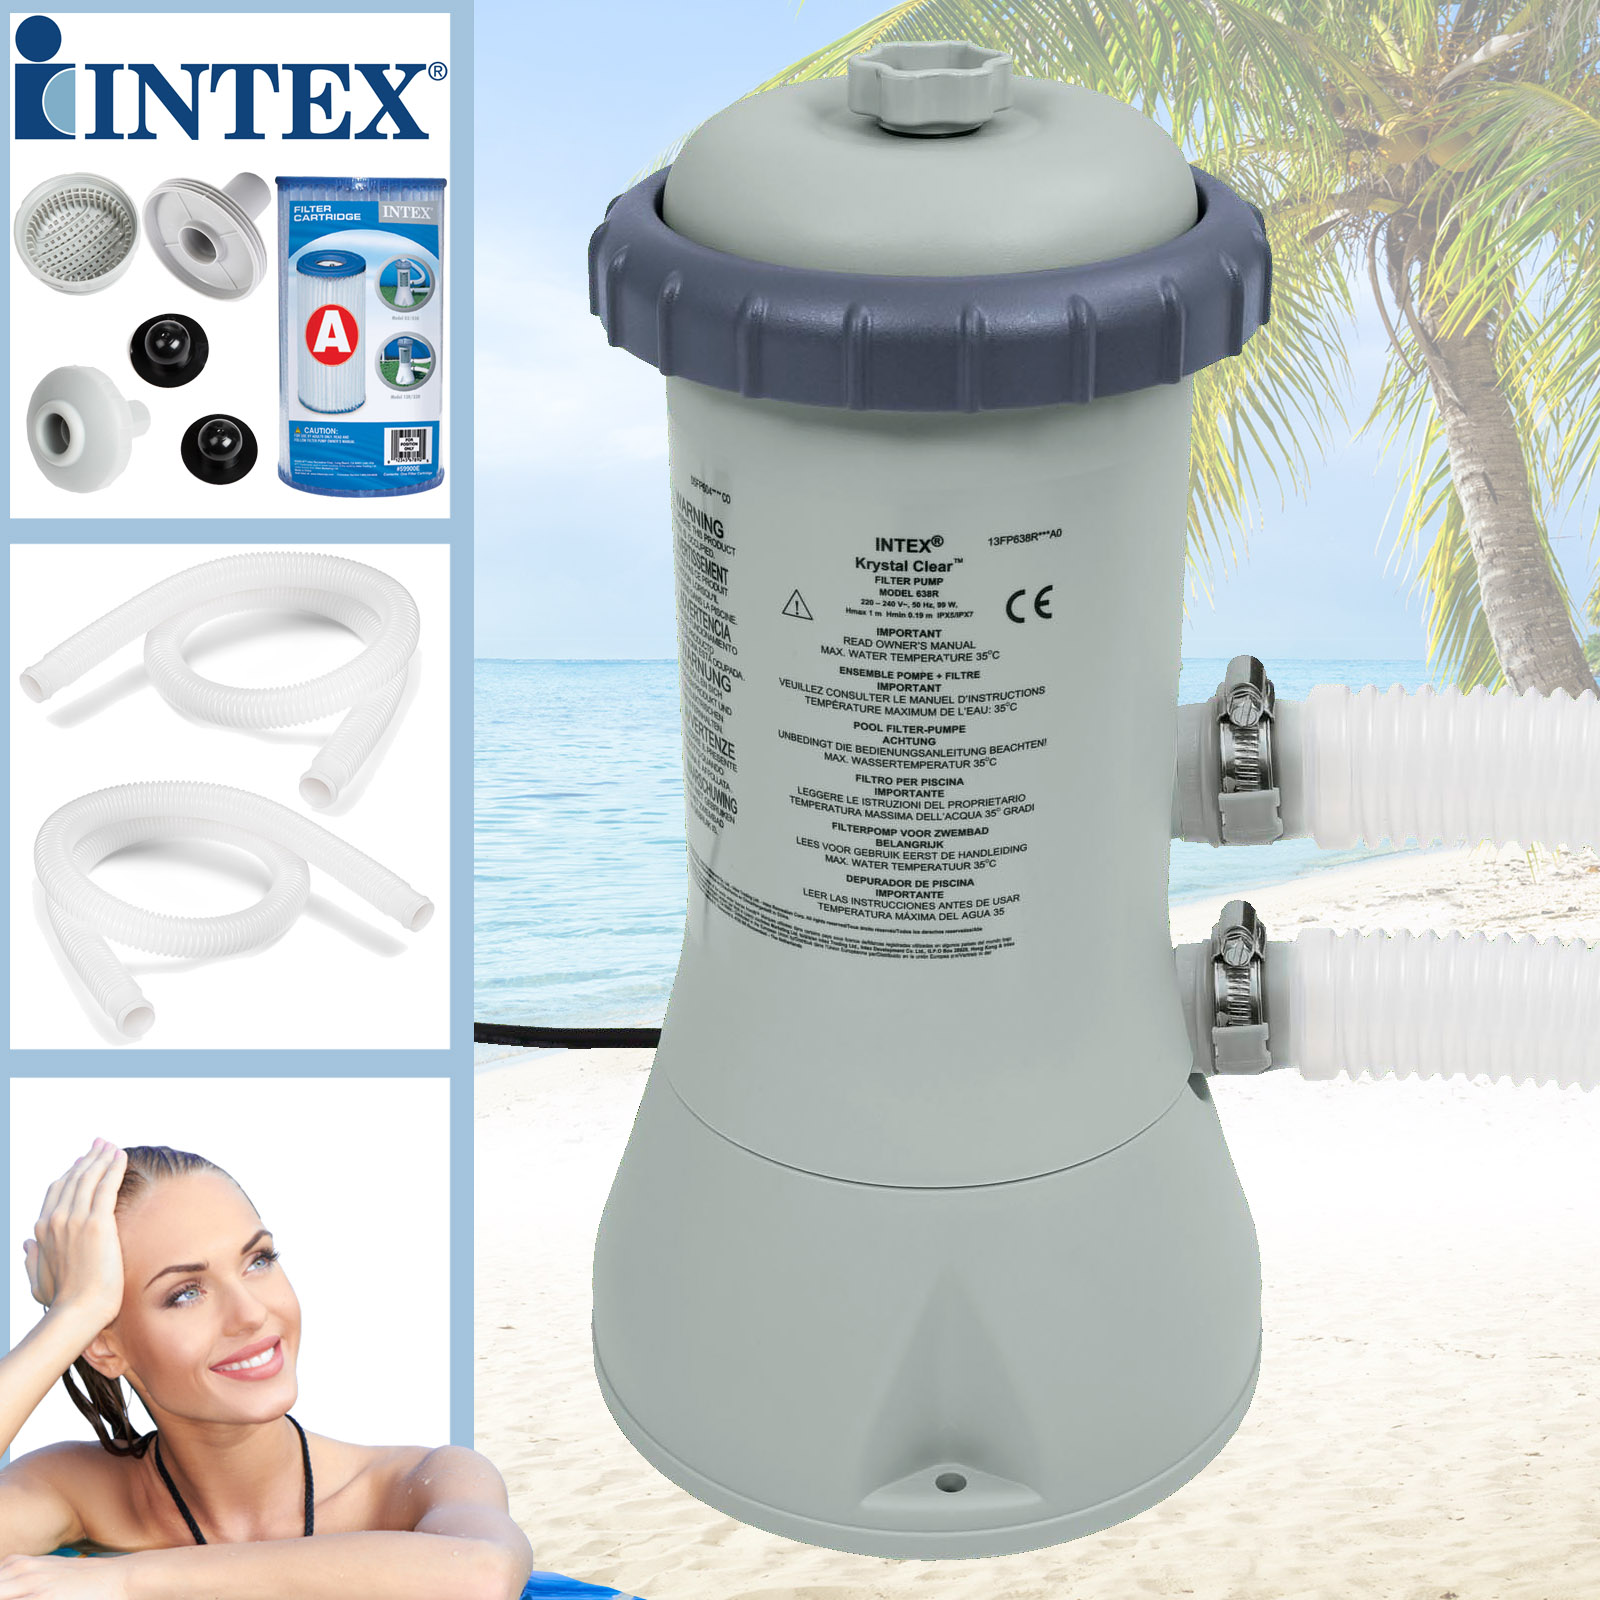 Pool Filterpumpe Lautstärke Details Zu Intex 2271 L H Swimming Pool Pumpe Filterpumpe Poolpumpe 1 Filter Schwimmbad